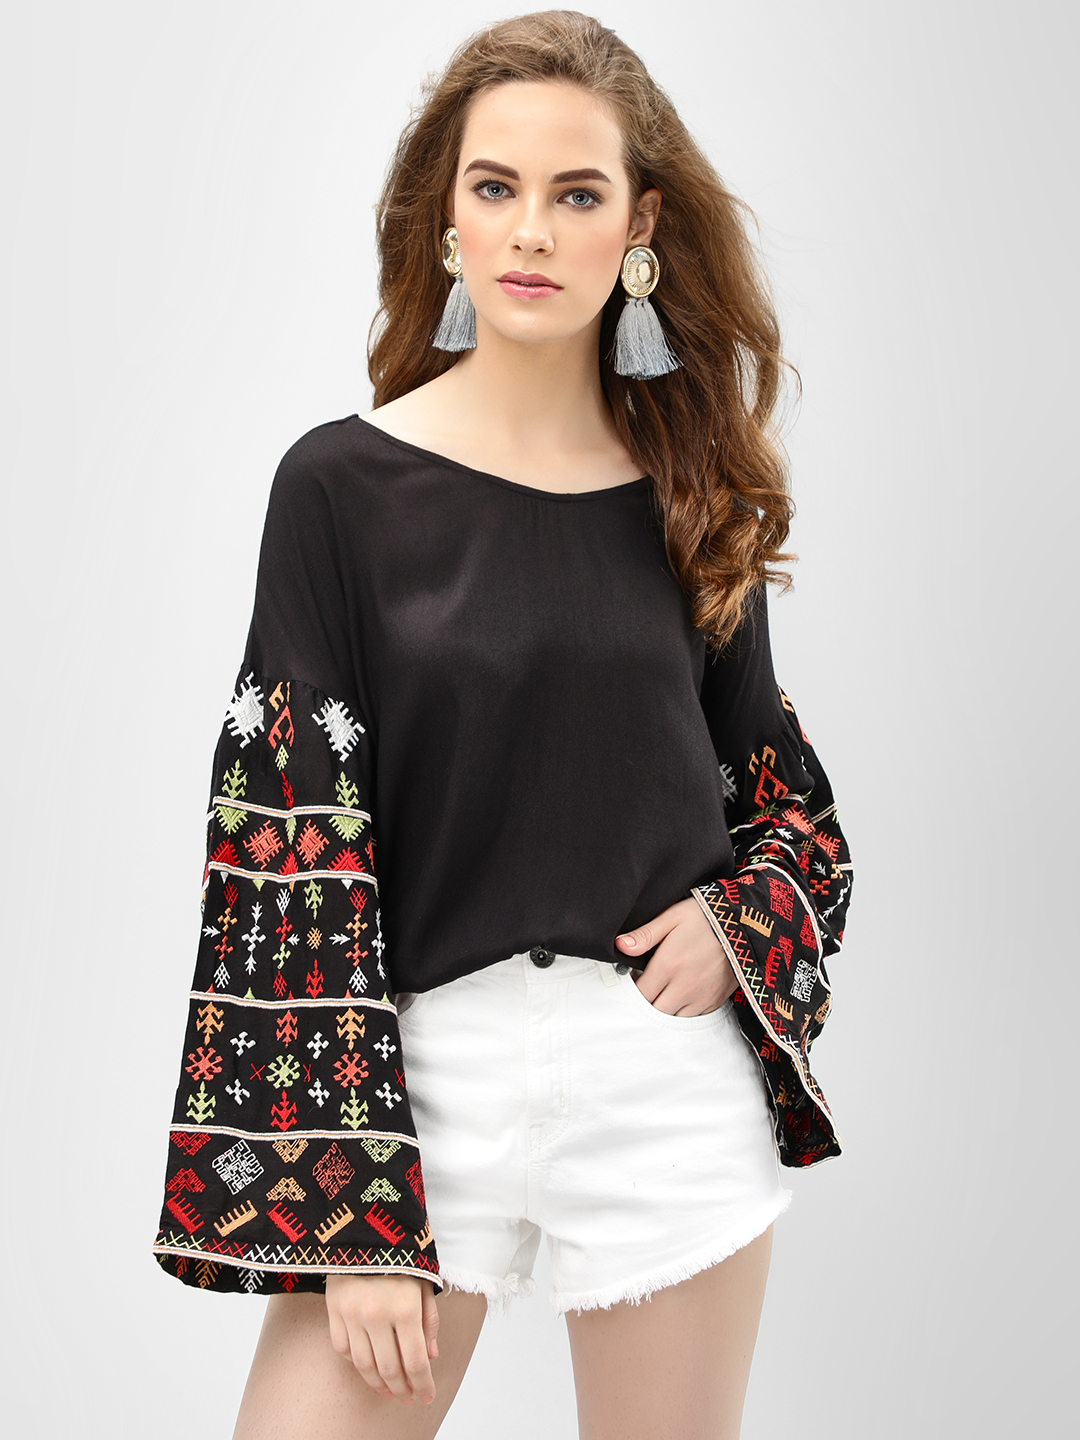 Rena Love Black Blouse With Embroidered Sleeves 1